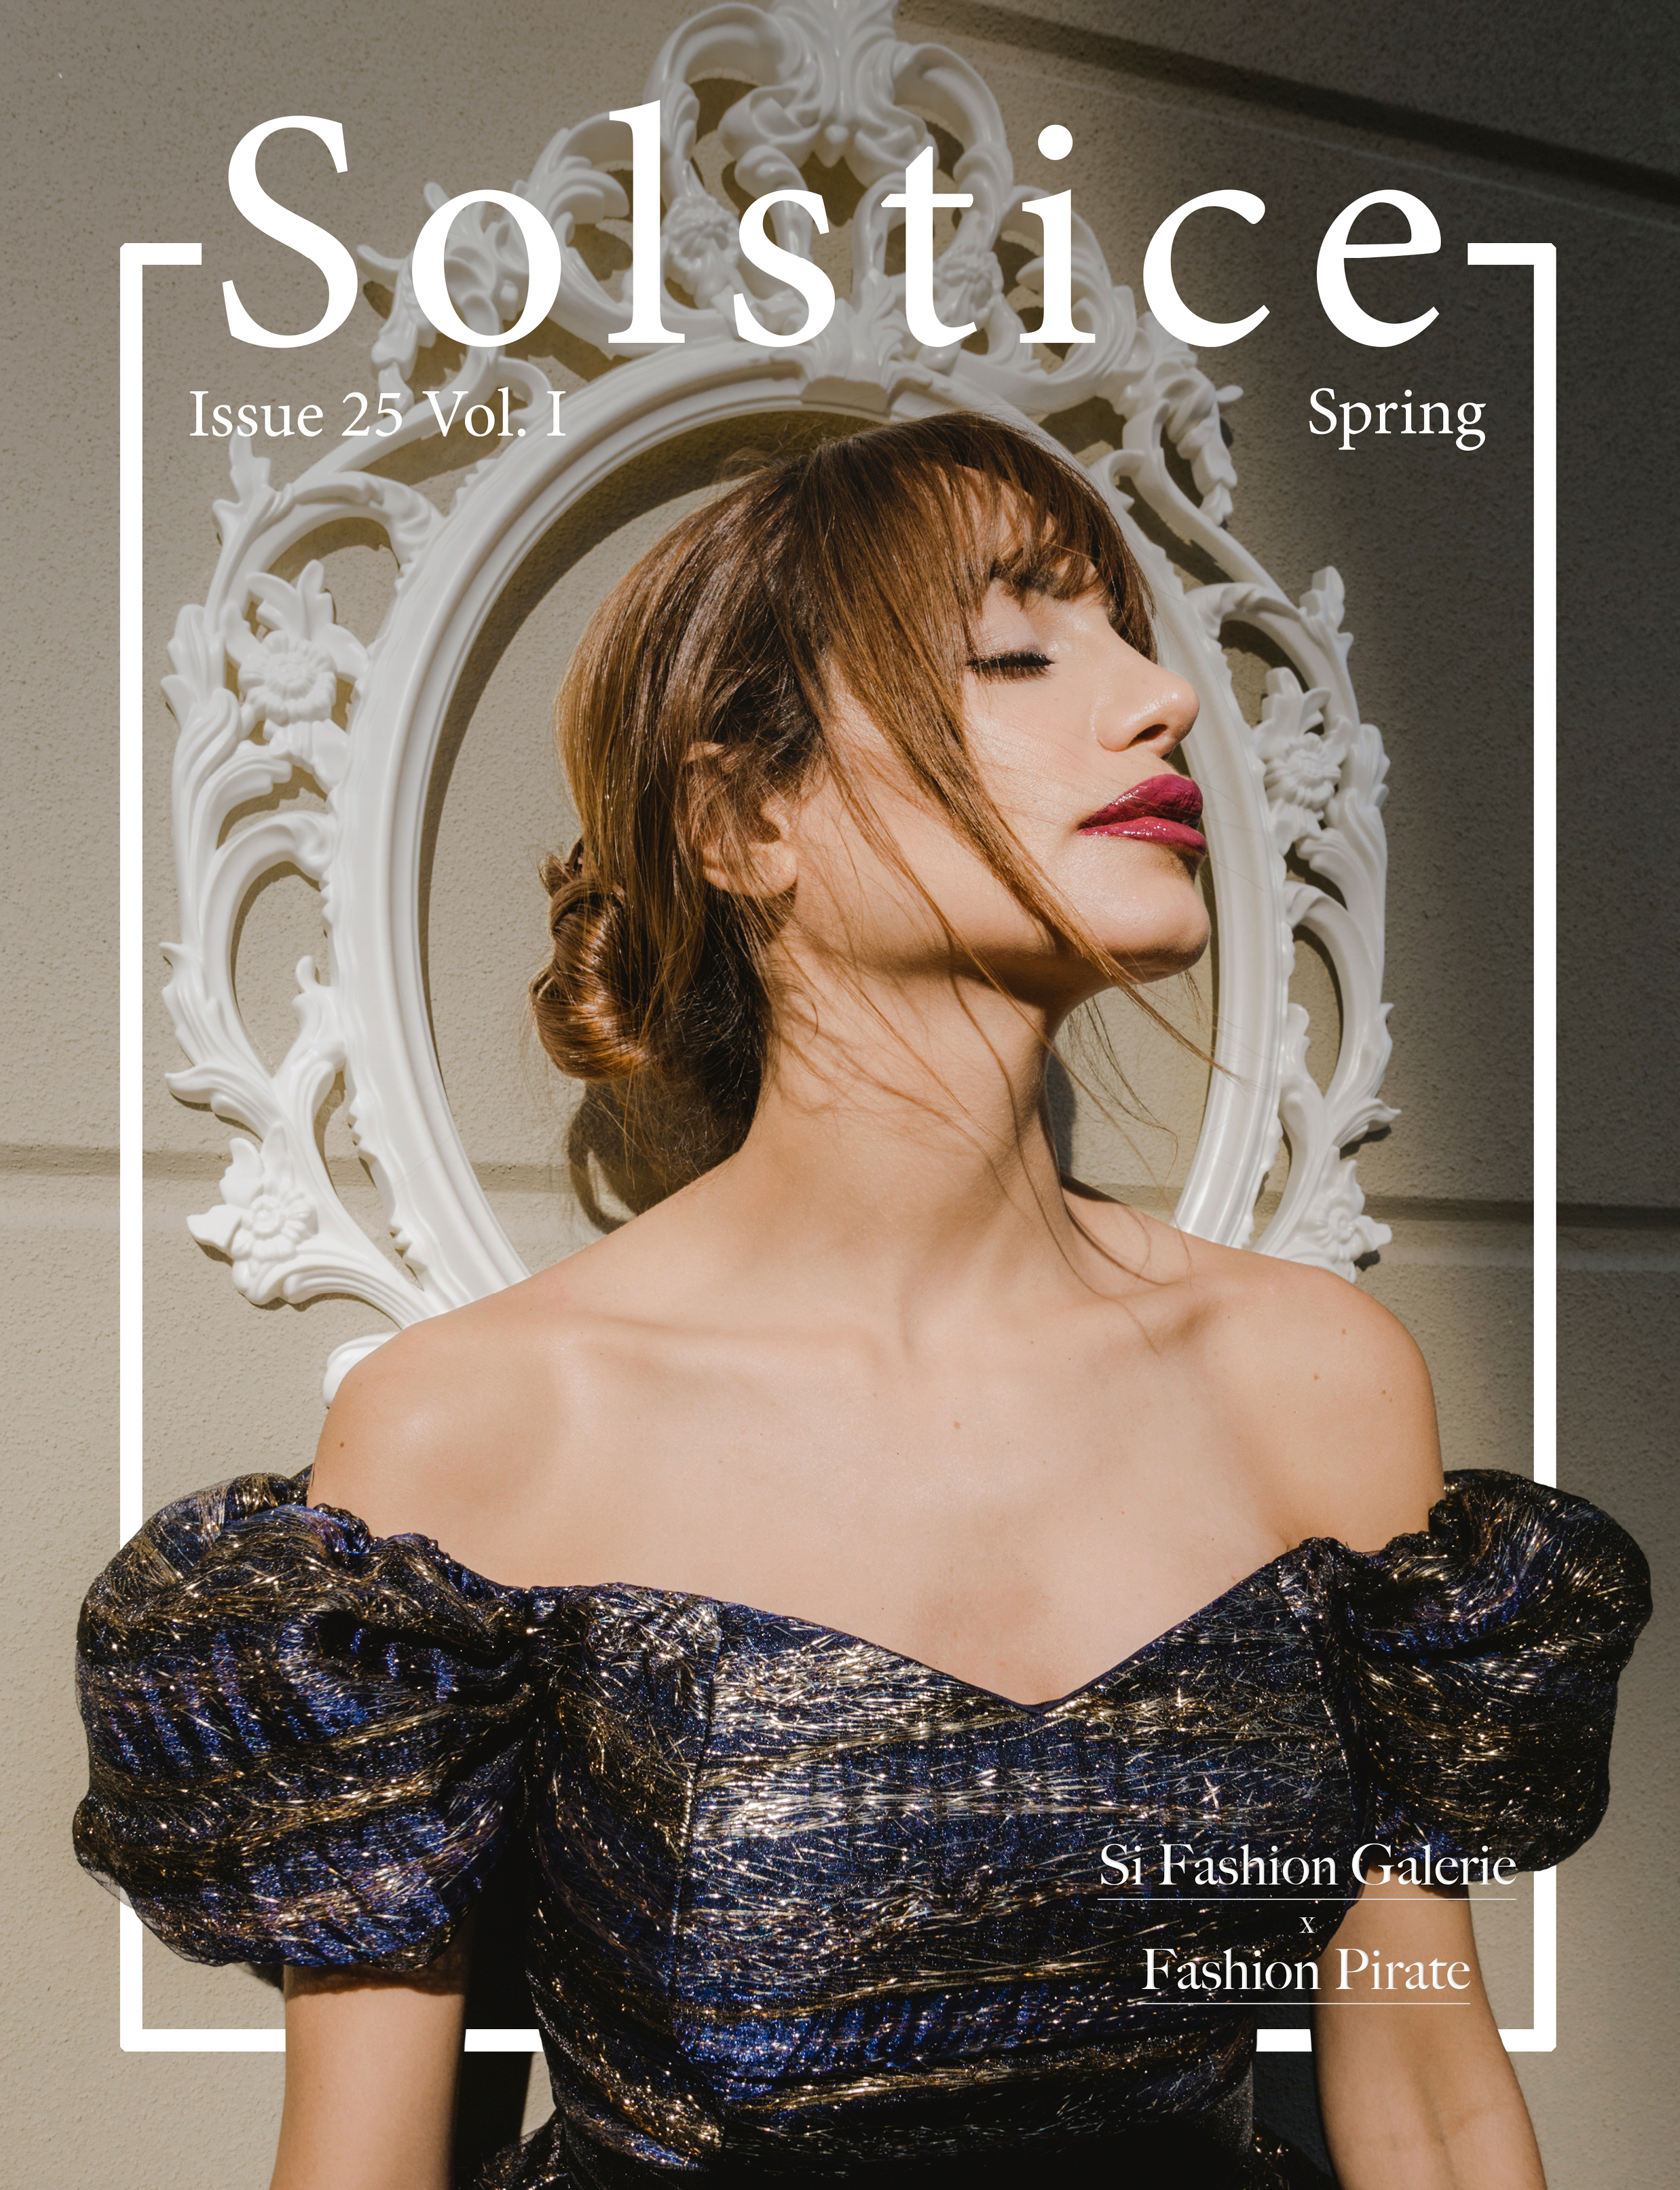 Solstice+Issue+25+Spring+Volume+1+Fashion+Pirate+x+Si+Fashion+Galerie.jpg